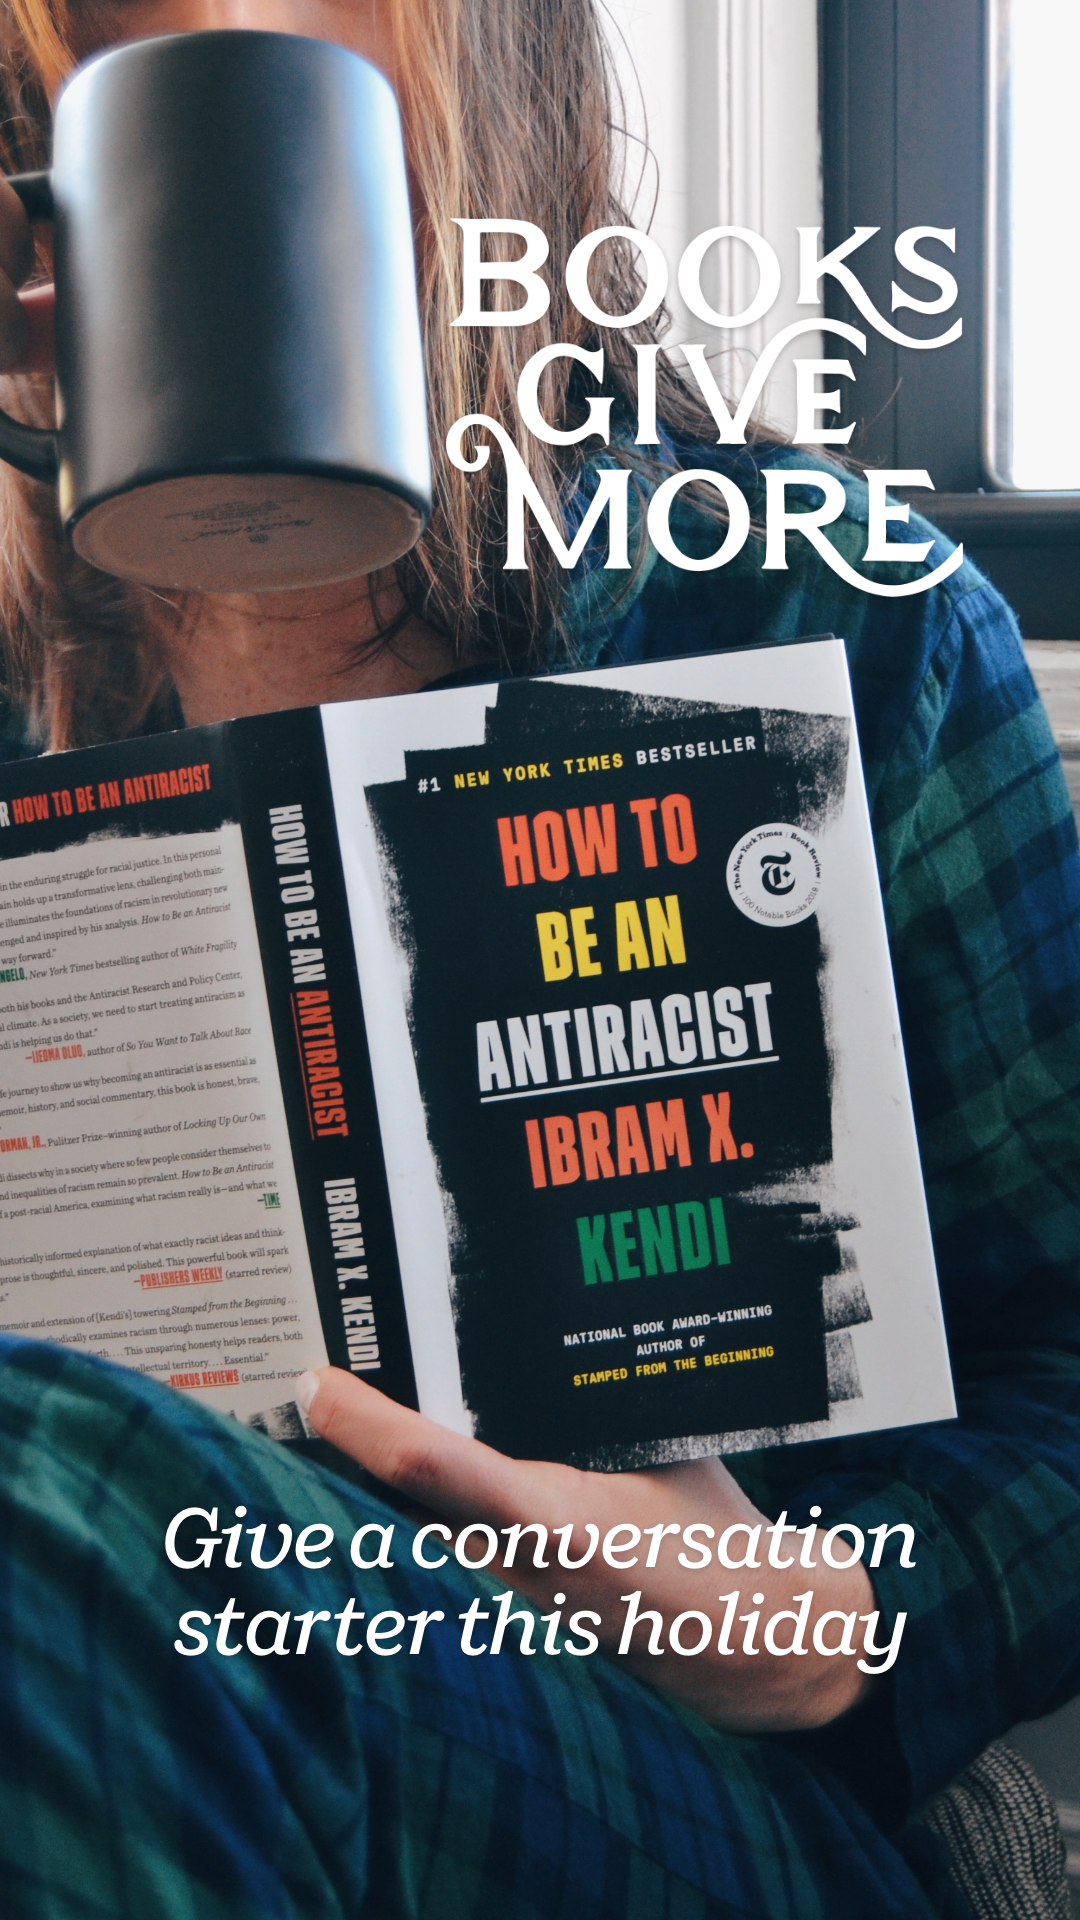 Give a conversation starter to readers looking to broaden their horizons. These nonfiction books including How to Be an Antiracist, Hood Feminism, Caste, and Between the World and Me will spark important dialogues with friends and family about issues of race, gender, and identity.